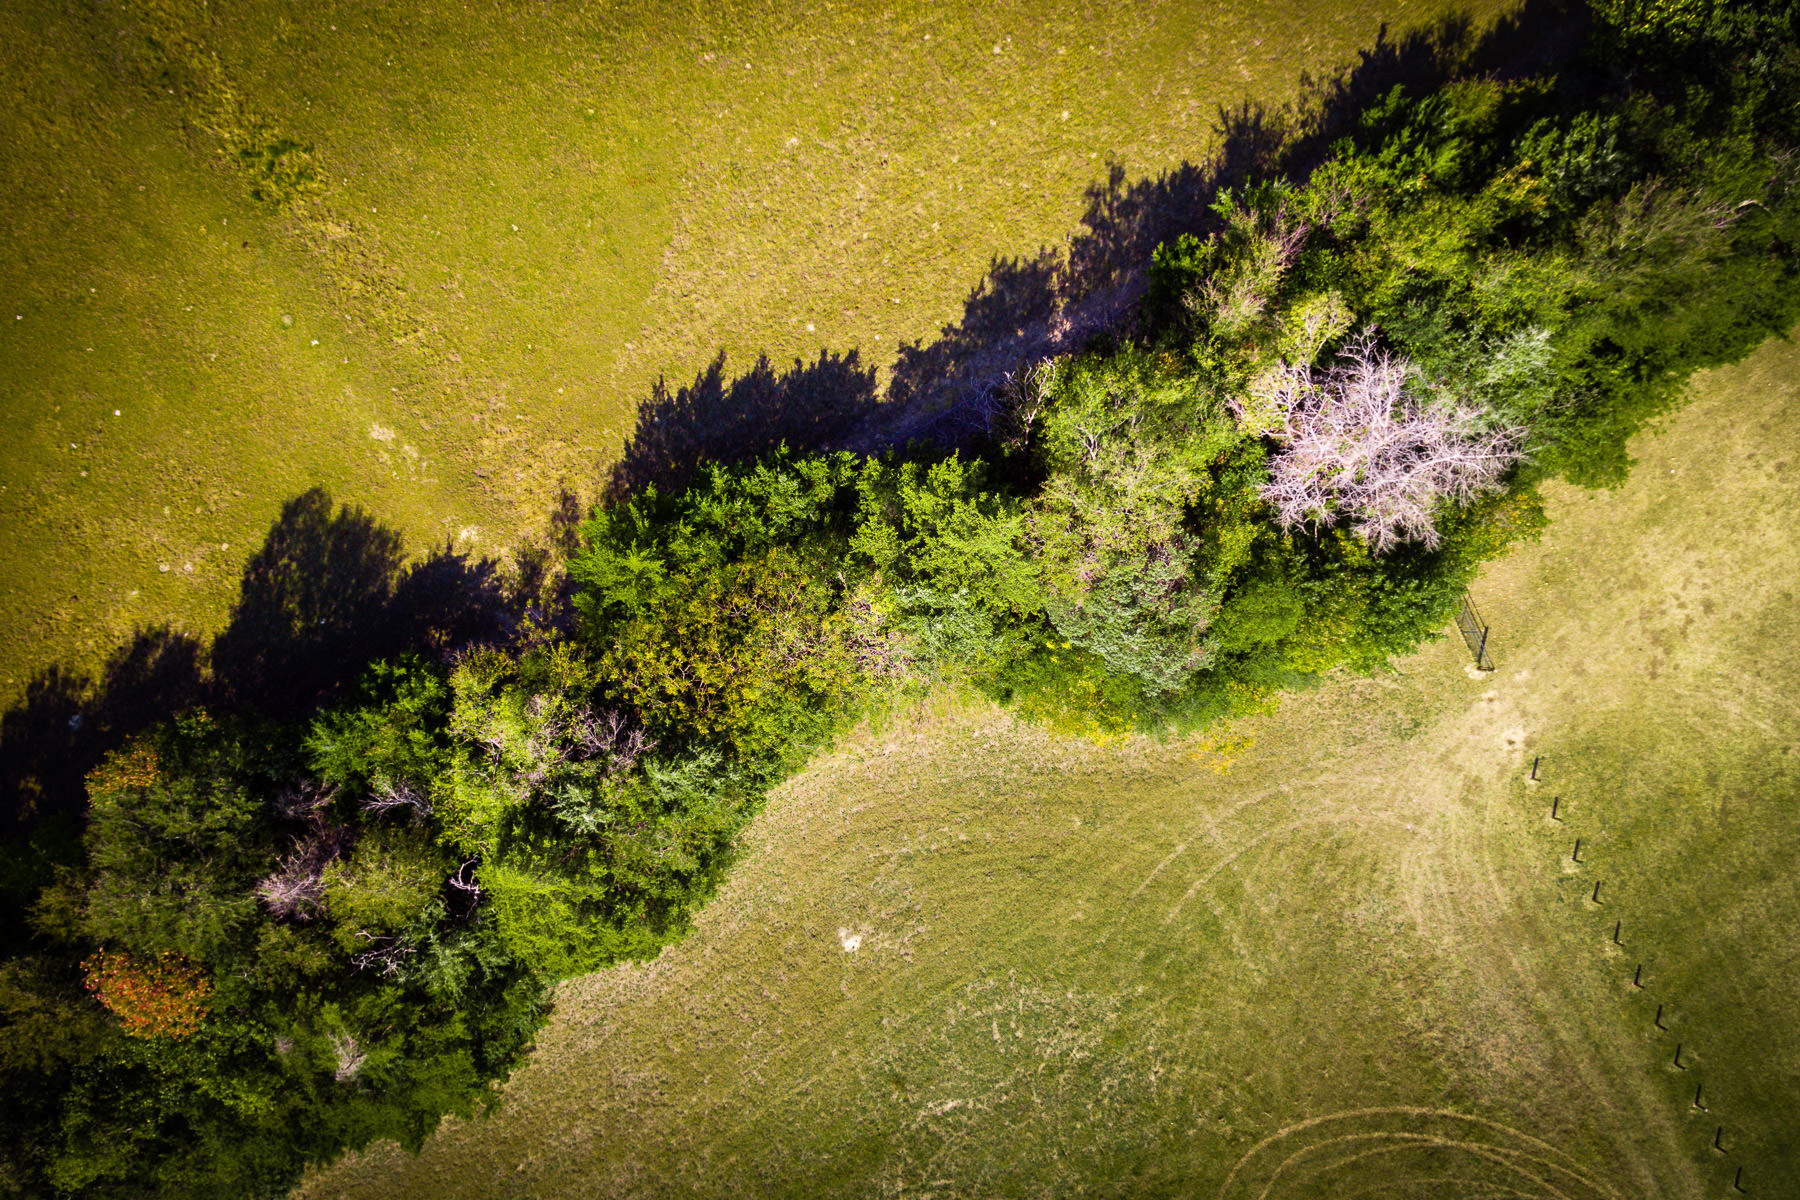 An aerial view of a tree line in Erwin Park, McKinney, Texas.